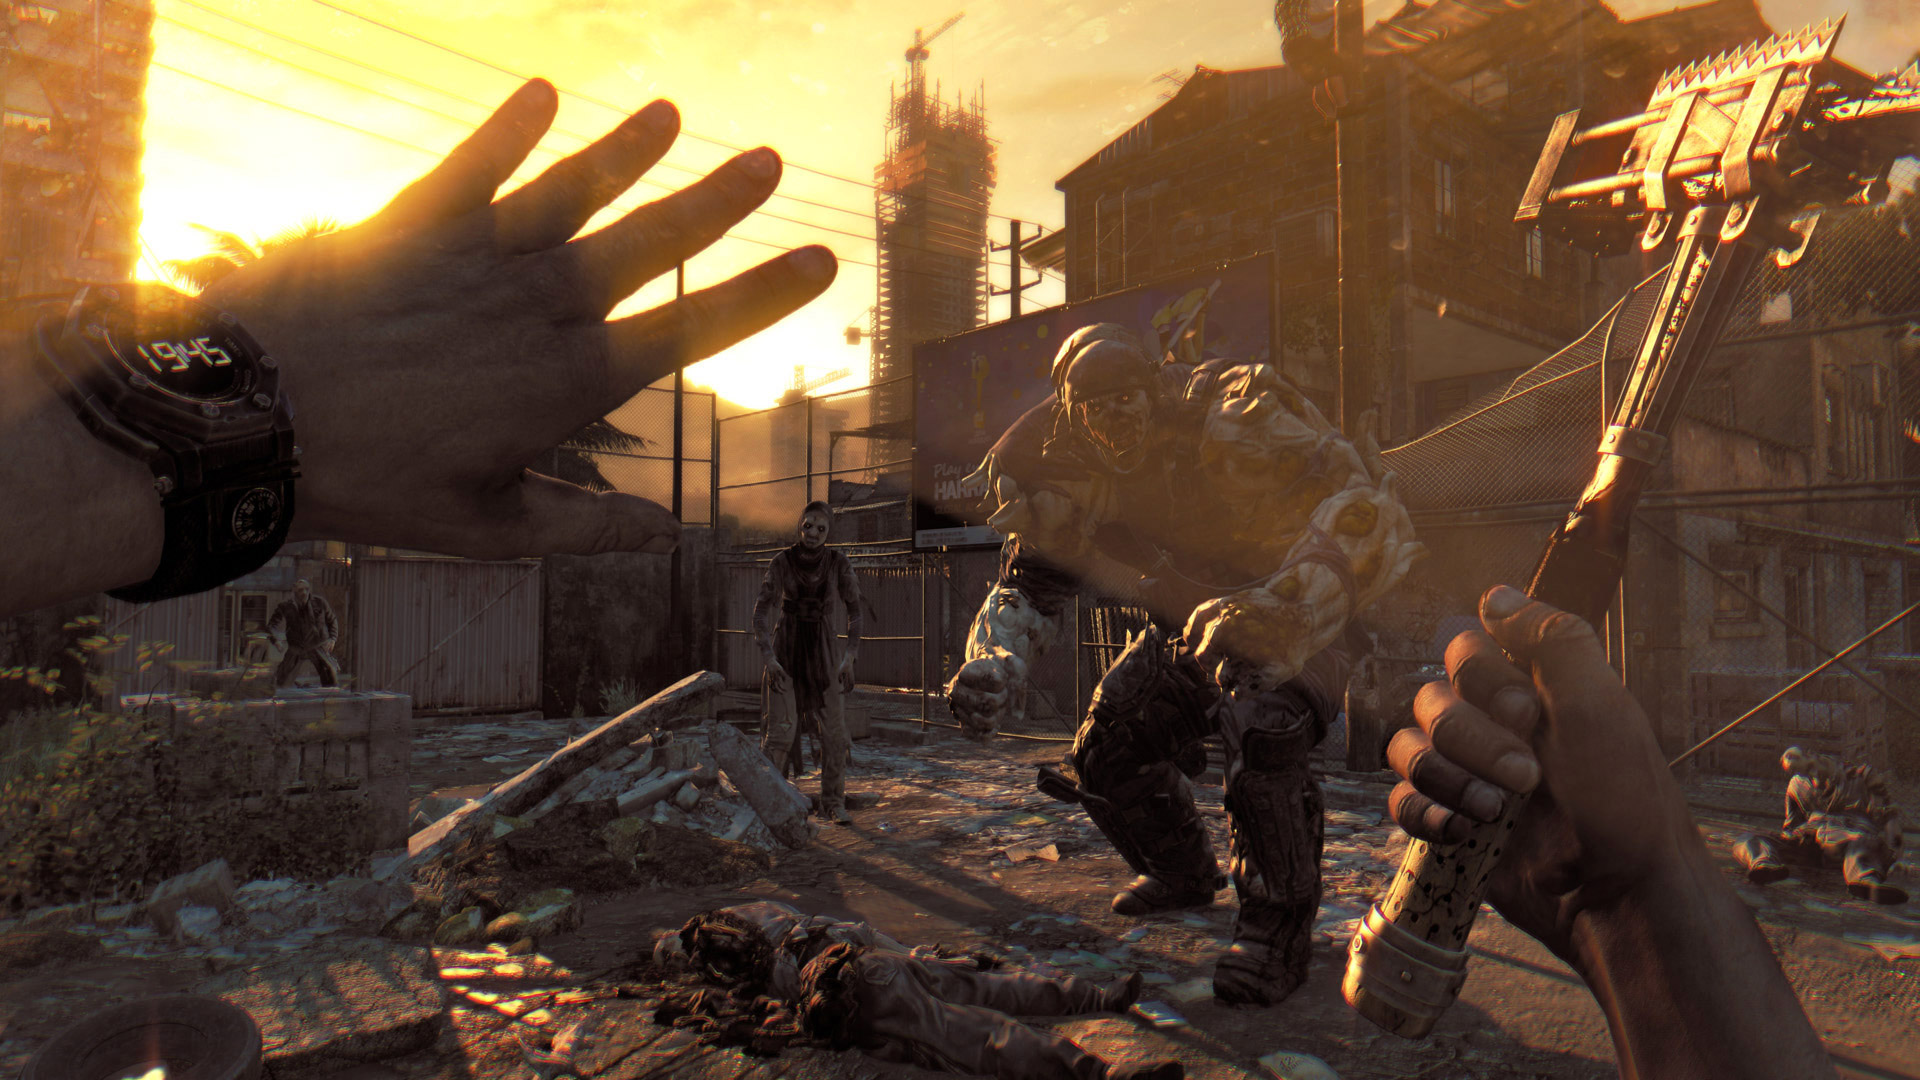 Dying Light in VR is terrifying, but also unfinished and unpolished